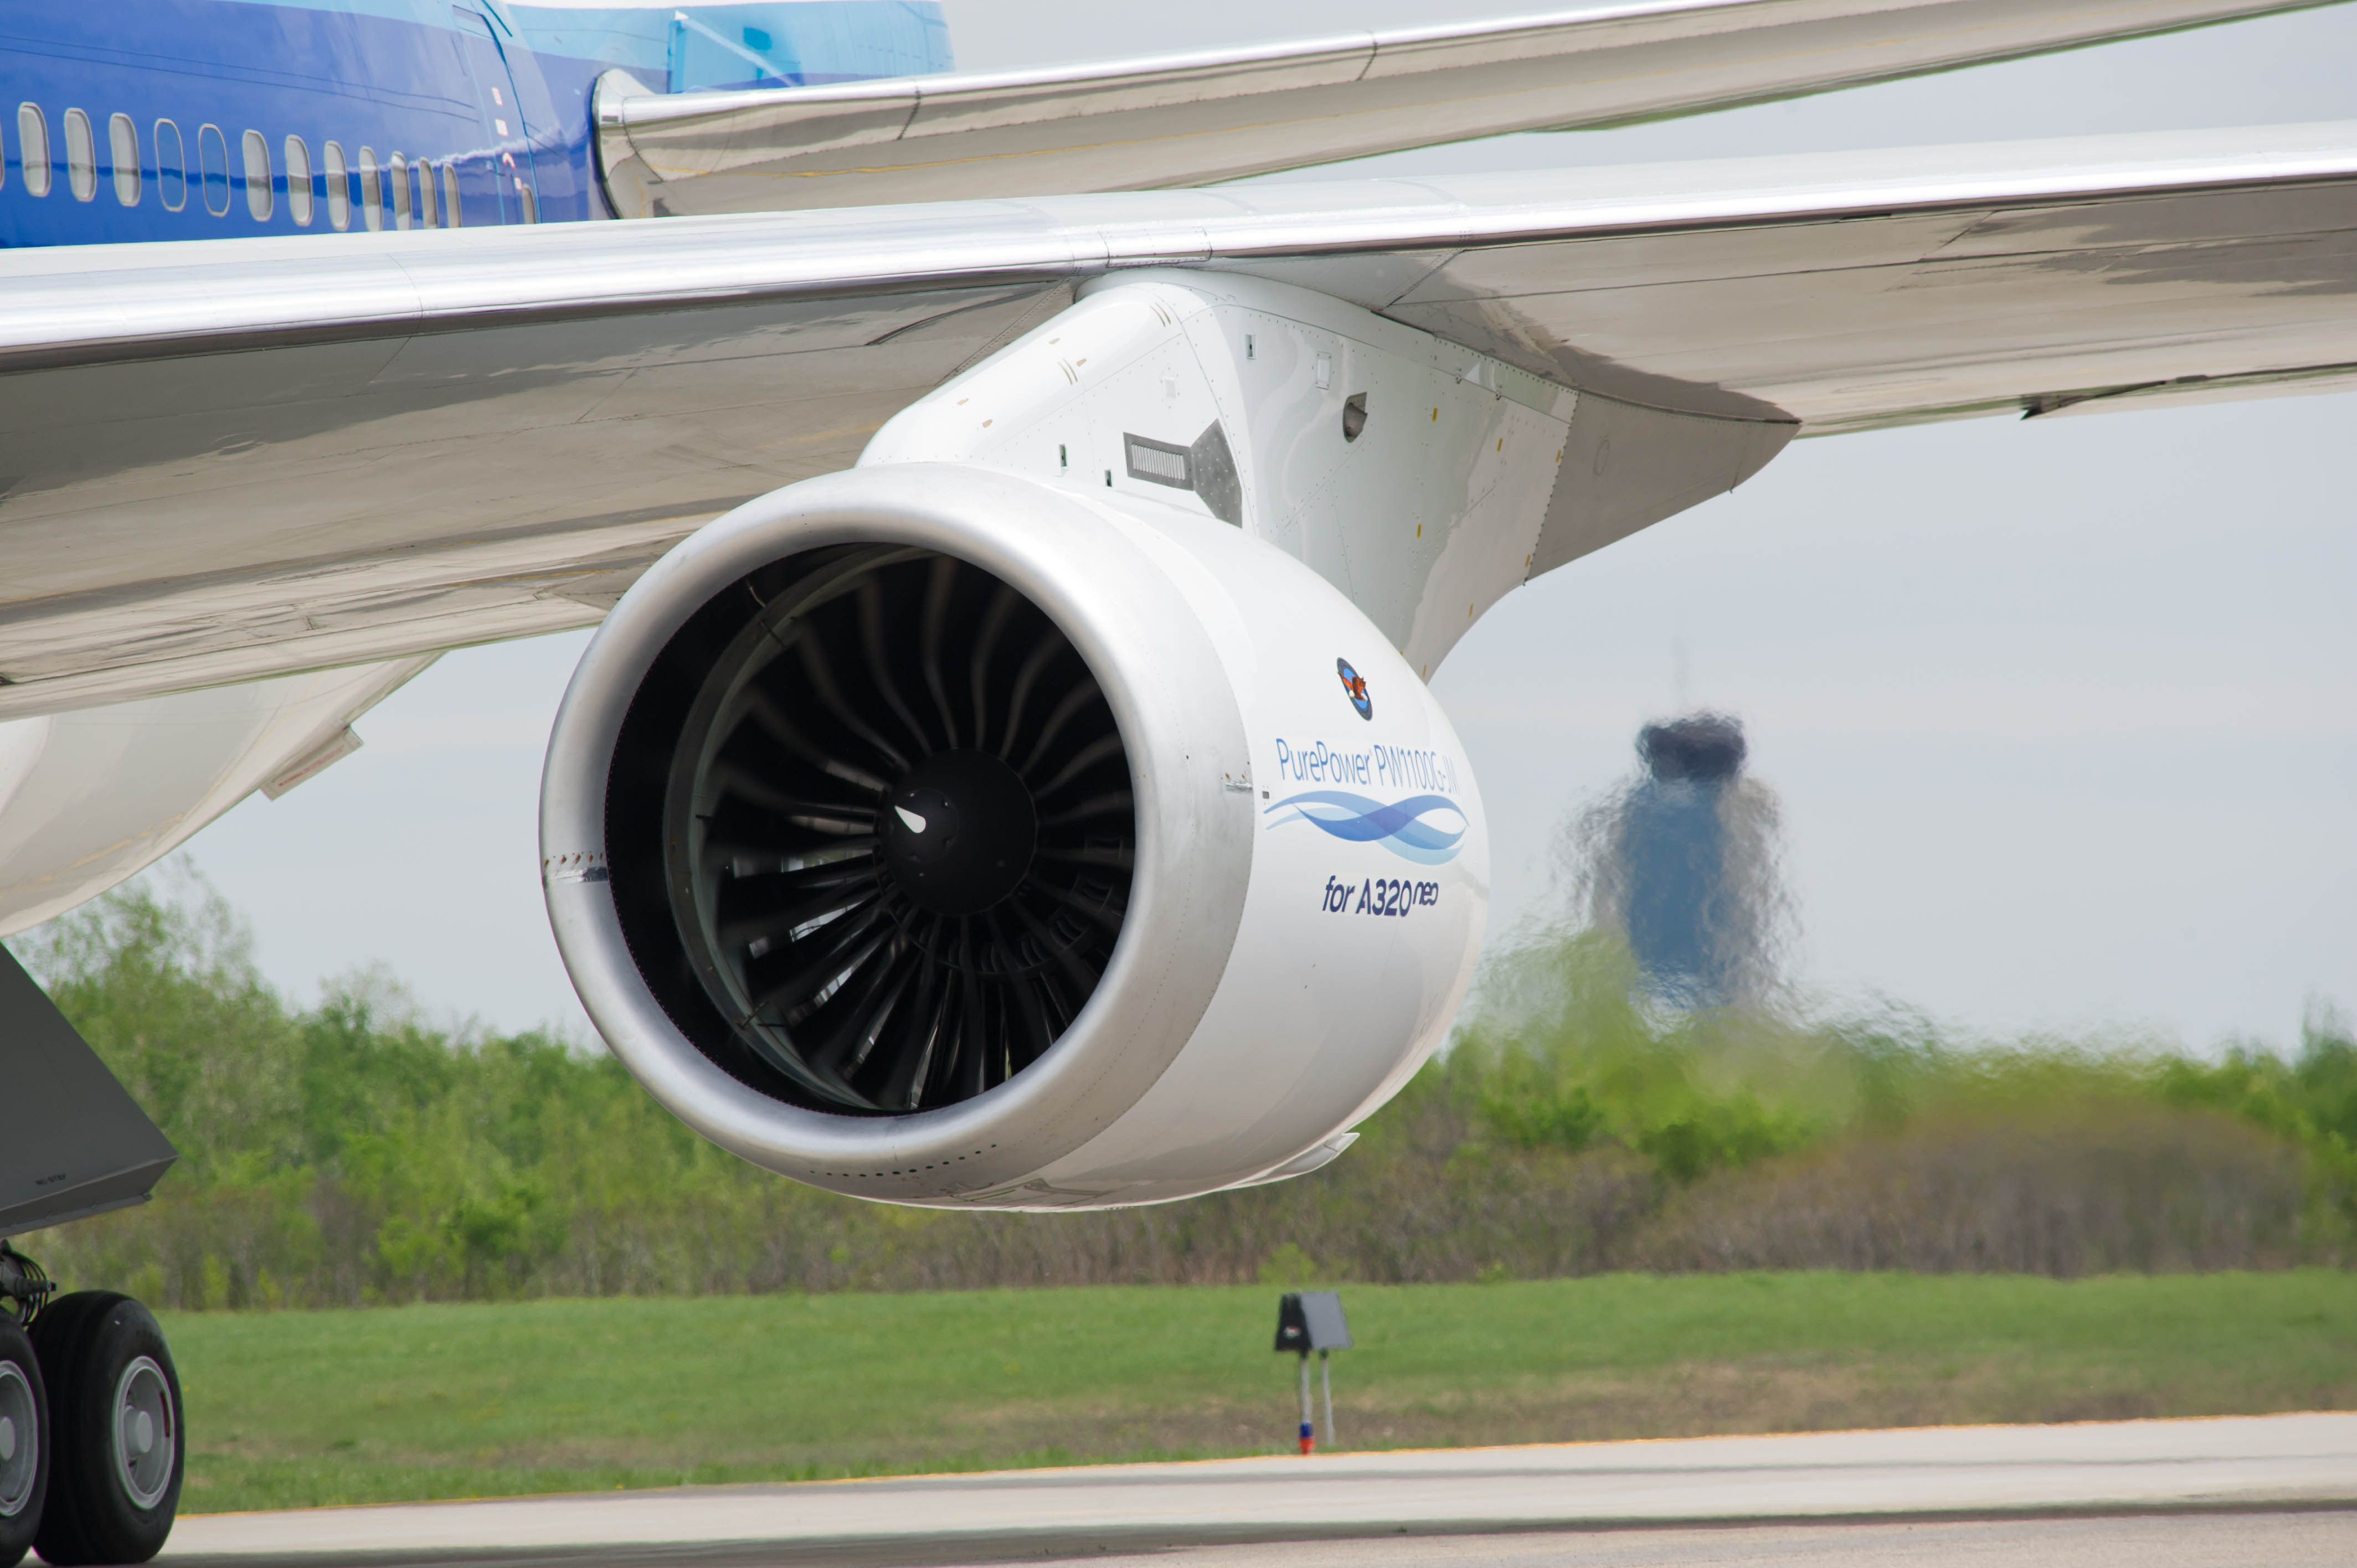 Alcoa announced a 10-year, $1.1 billion agreement with Pratt & Whitney, a division of United Technologies Corp., for state-of-the-art jet engine components including the forging for the first ever aluminum fan blade for Pratt & Whitney